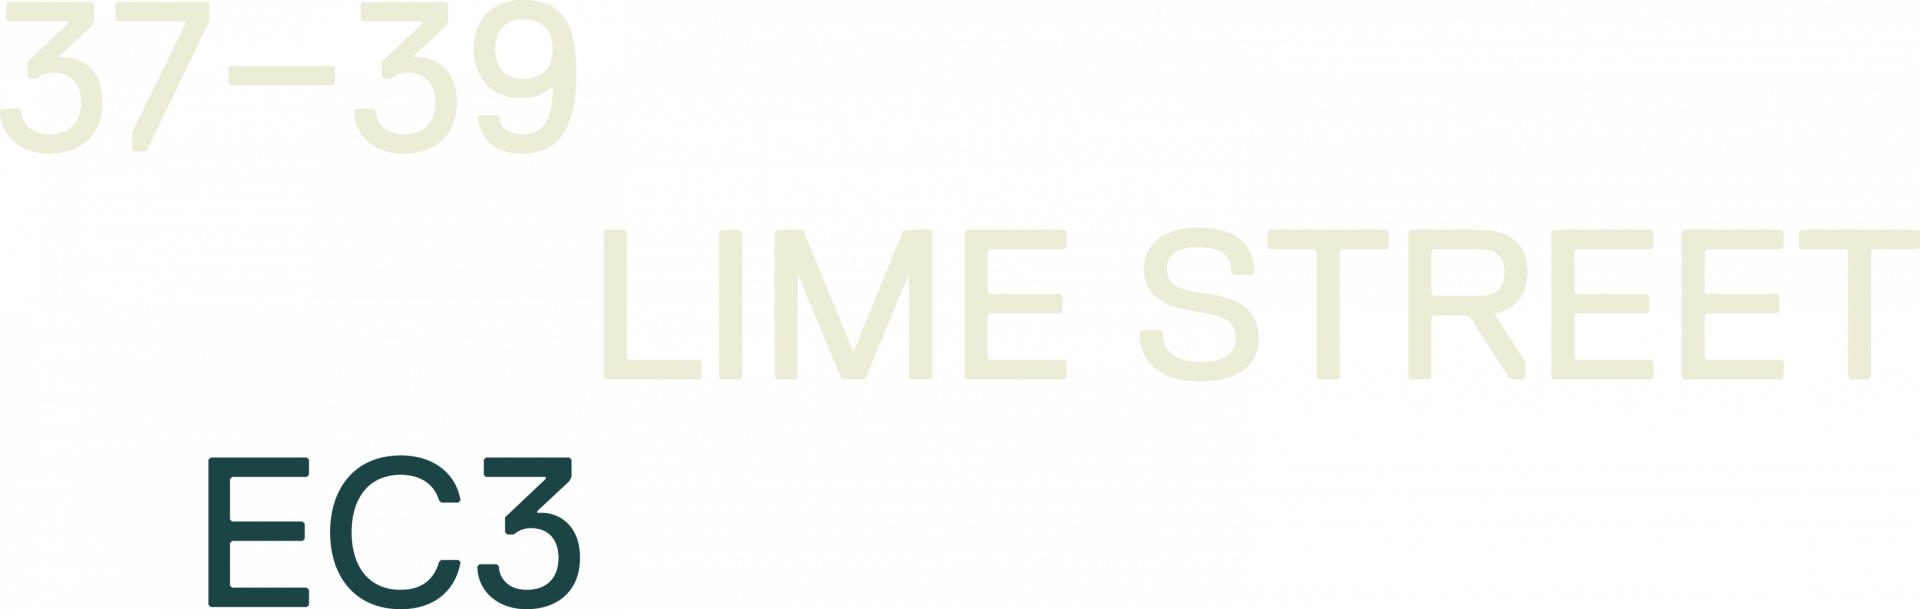 The Lime Street Estate - 37-39 Lime Street Logo